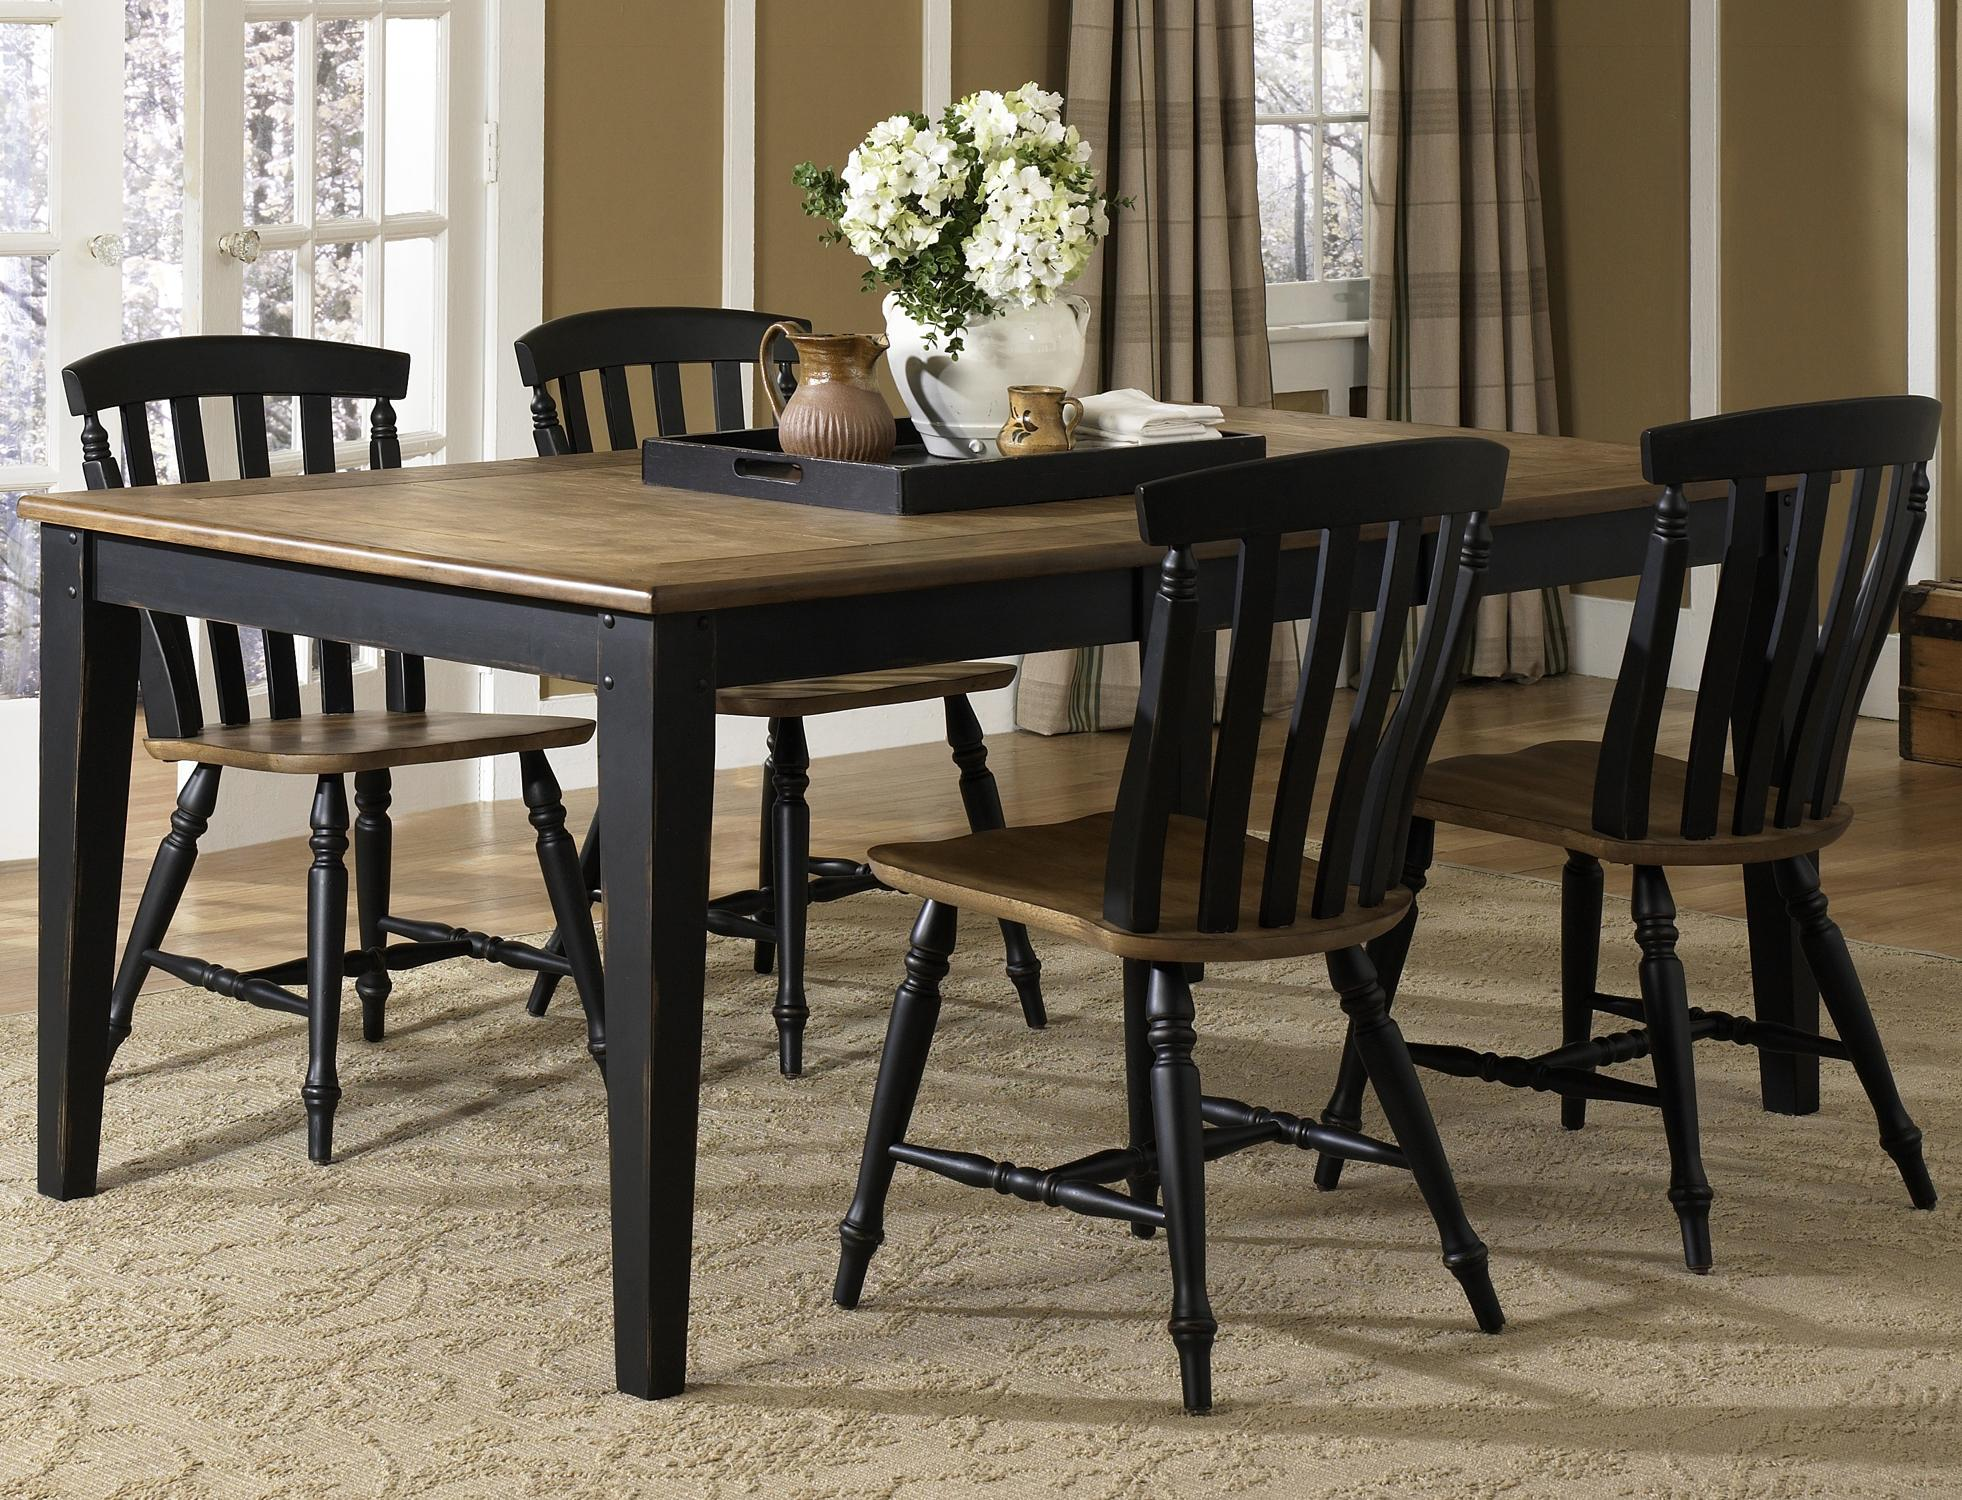 Al Fresco II 5 Piece Rectangular Table and Chairs Set by Liberty Furniture at Lapeer Furniture & Mattress Center